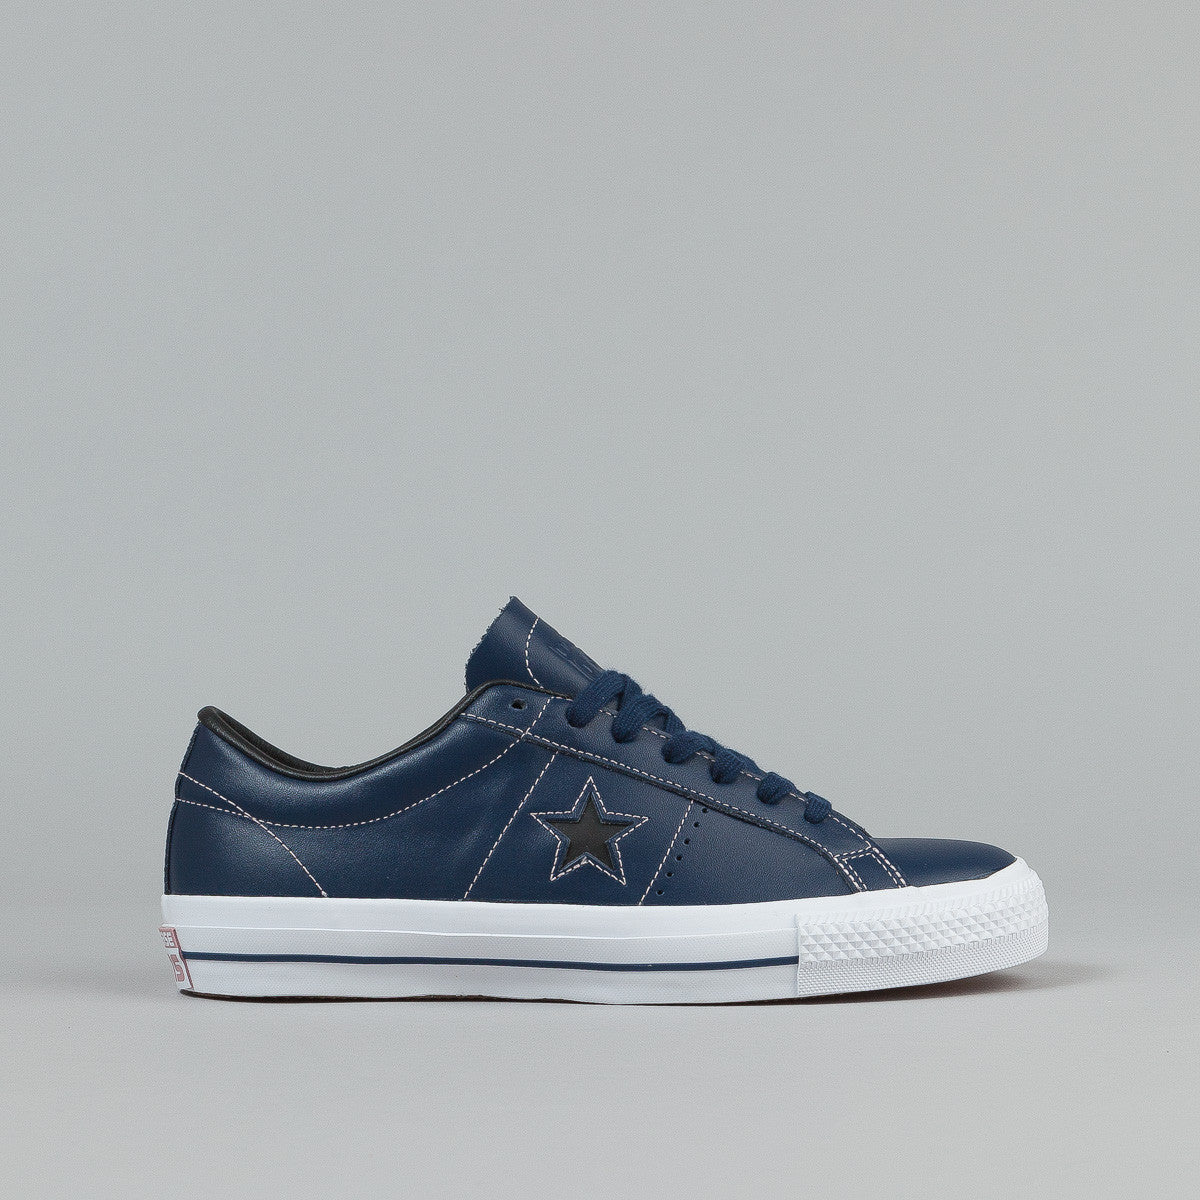 Converse One Star Skate Pro Ox Shoes